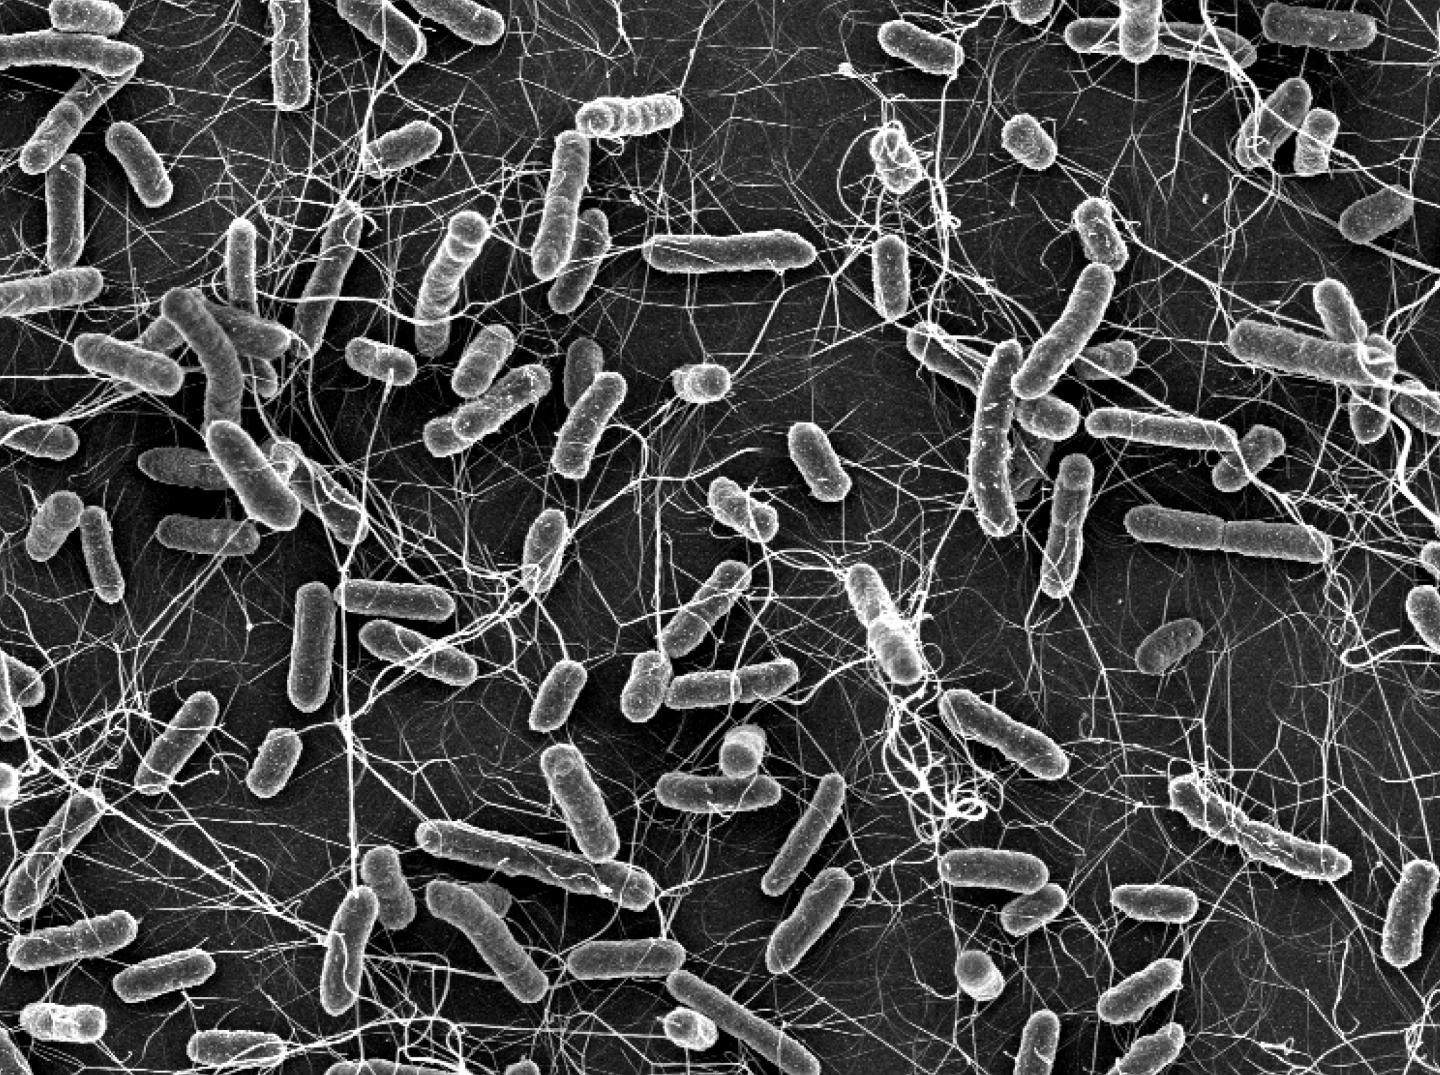 Salmonella causes diarrhoea in animals and humans. These bacteria become a particular public health concern if they are resistant to antibiotics (electron microscopic photograph). / Credit: ETH Zurich / Stefan Fattinger